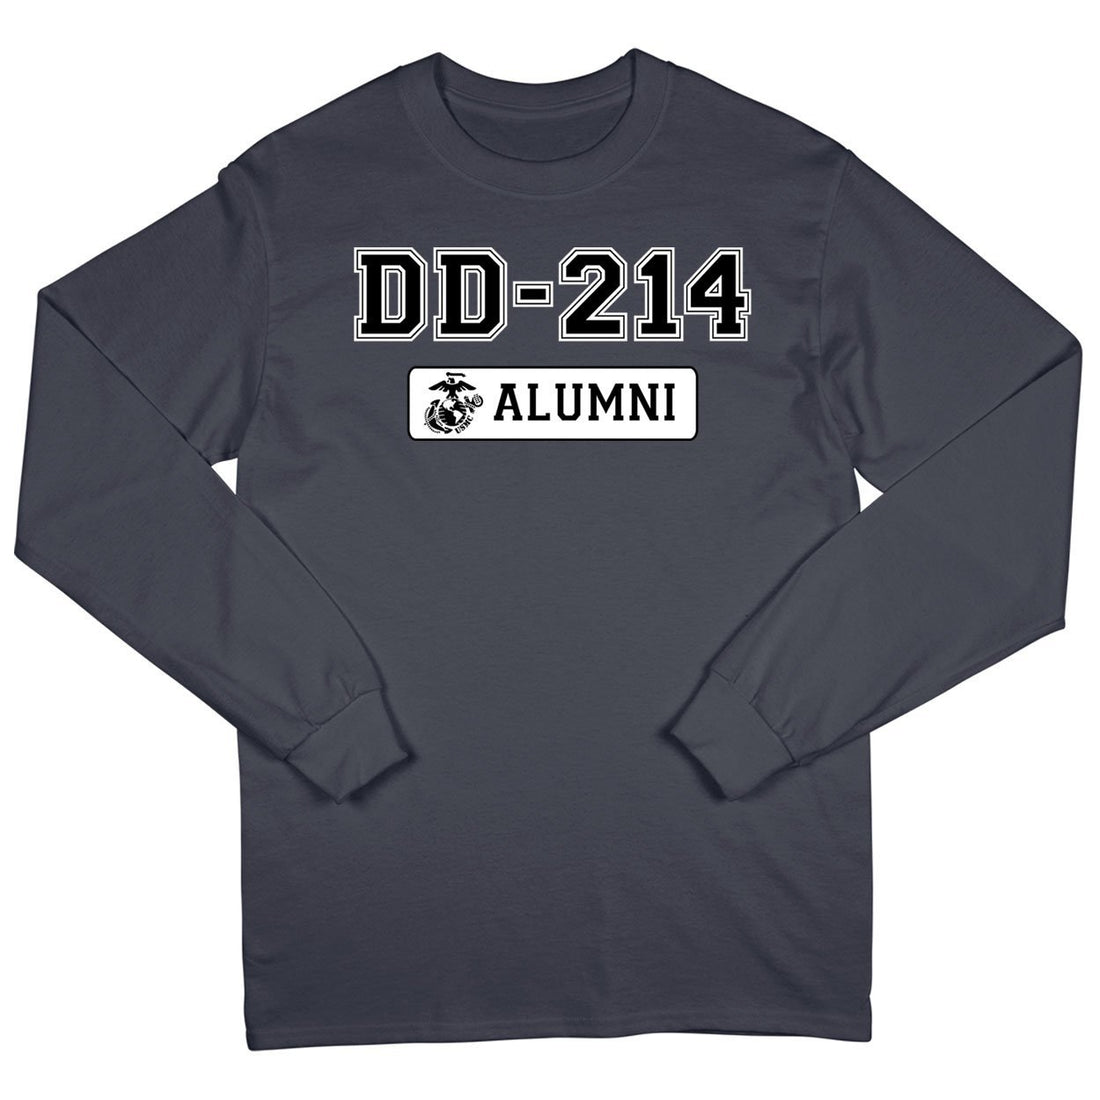 DD-214 Alumni Long Sleeve T-Shirt